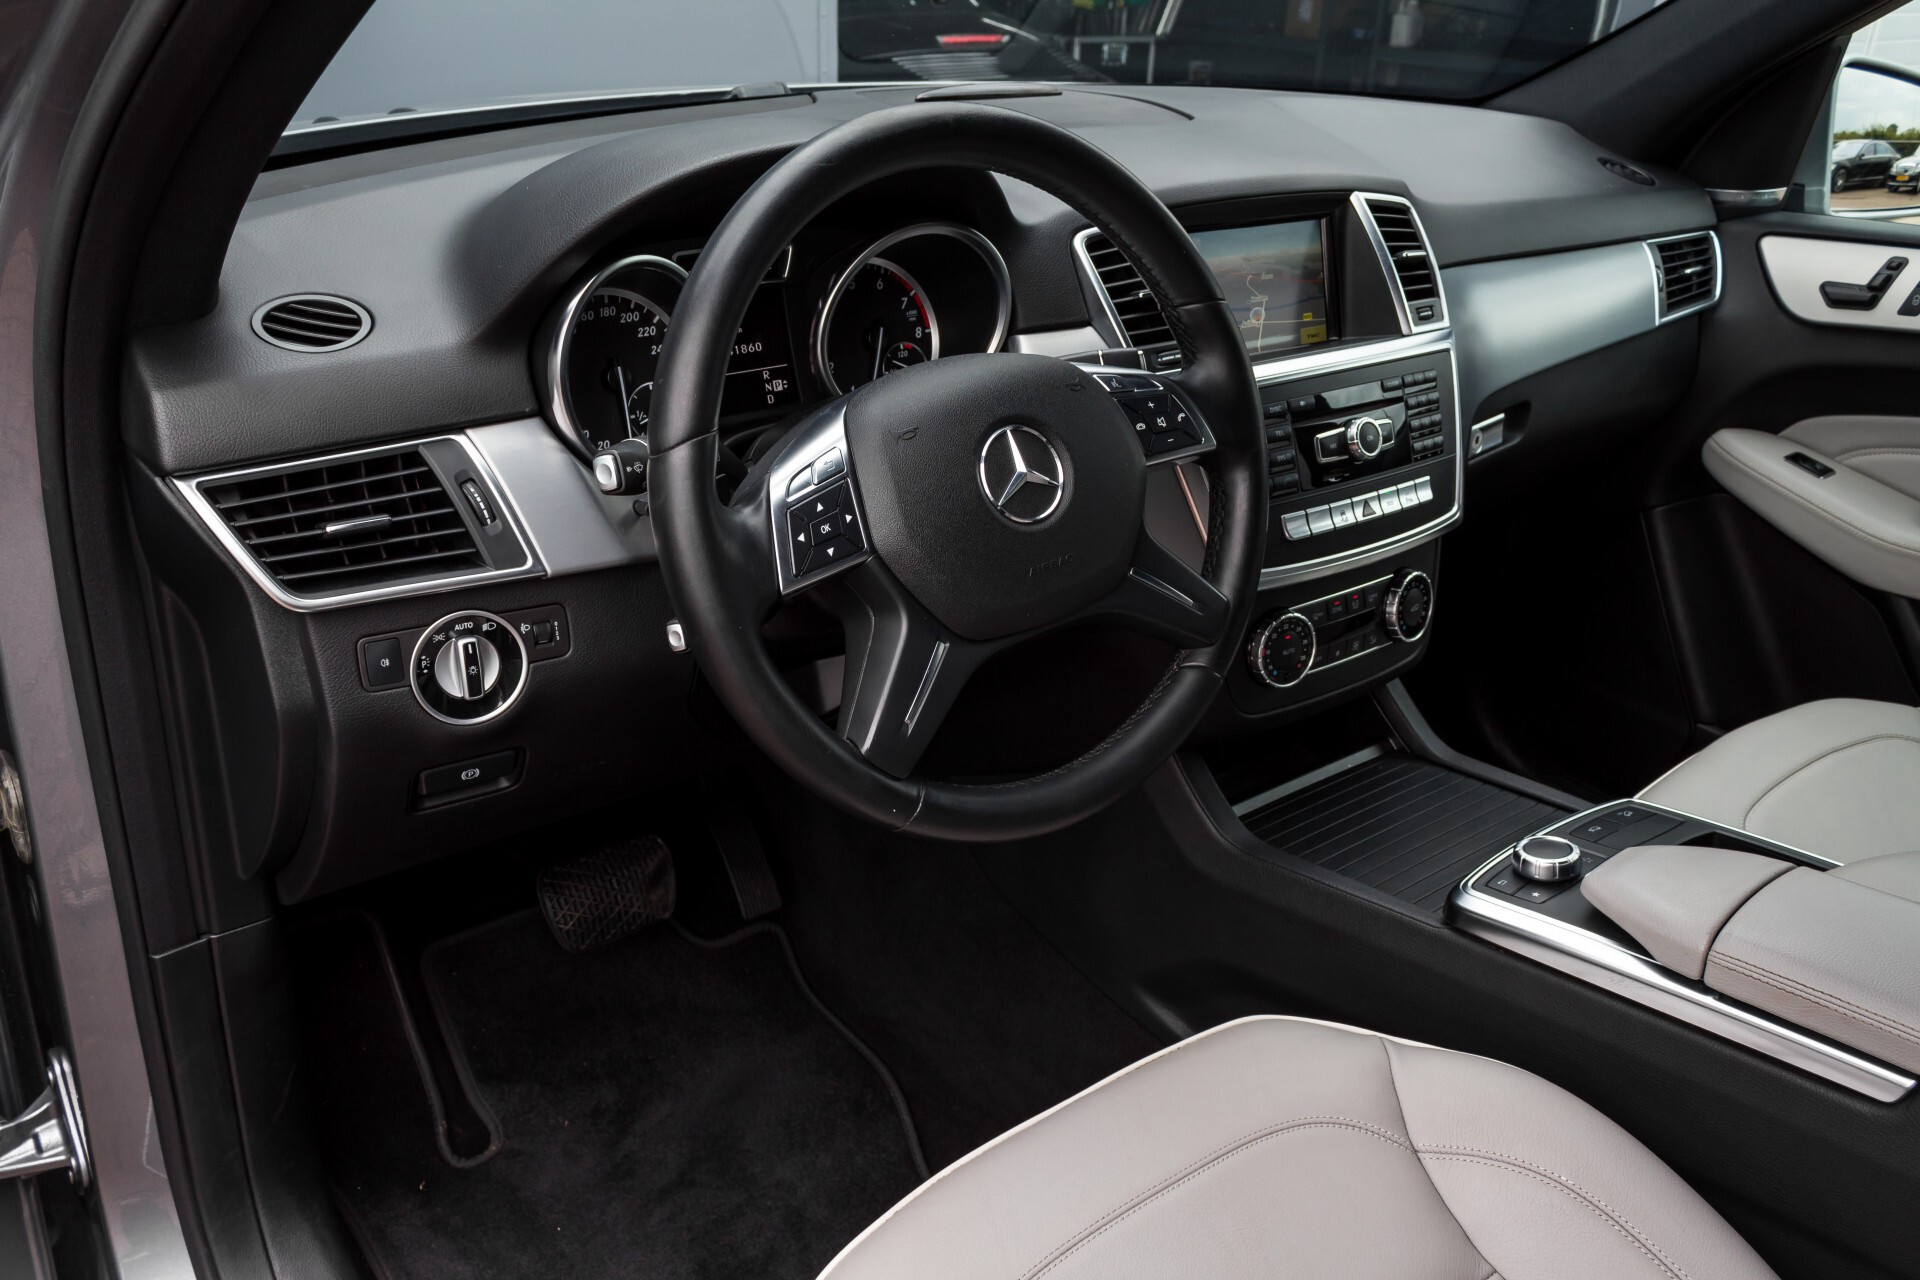 Mercedes-Benz M-Klasse 350 AMG 4-M Panorama/Keyless/Harman-Kardon/Camera/Trekhaak Aut7 Foto 31